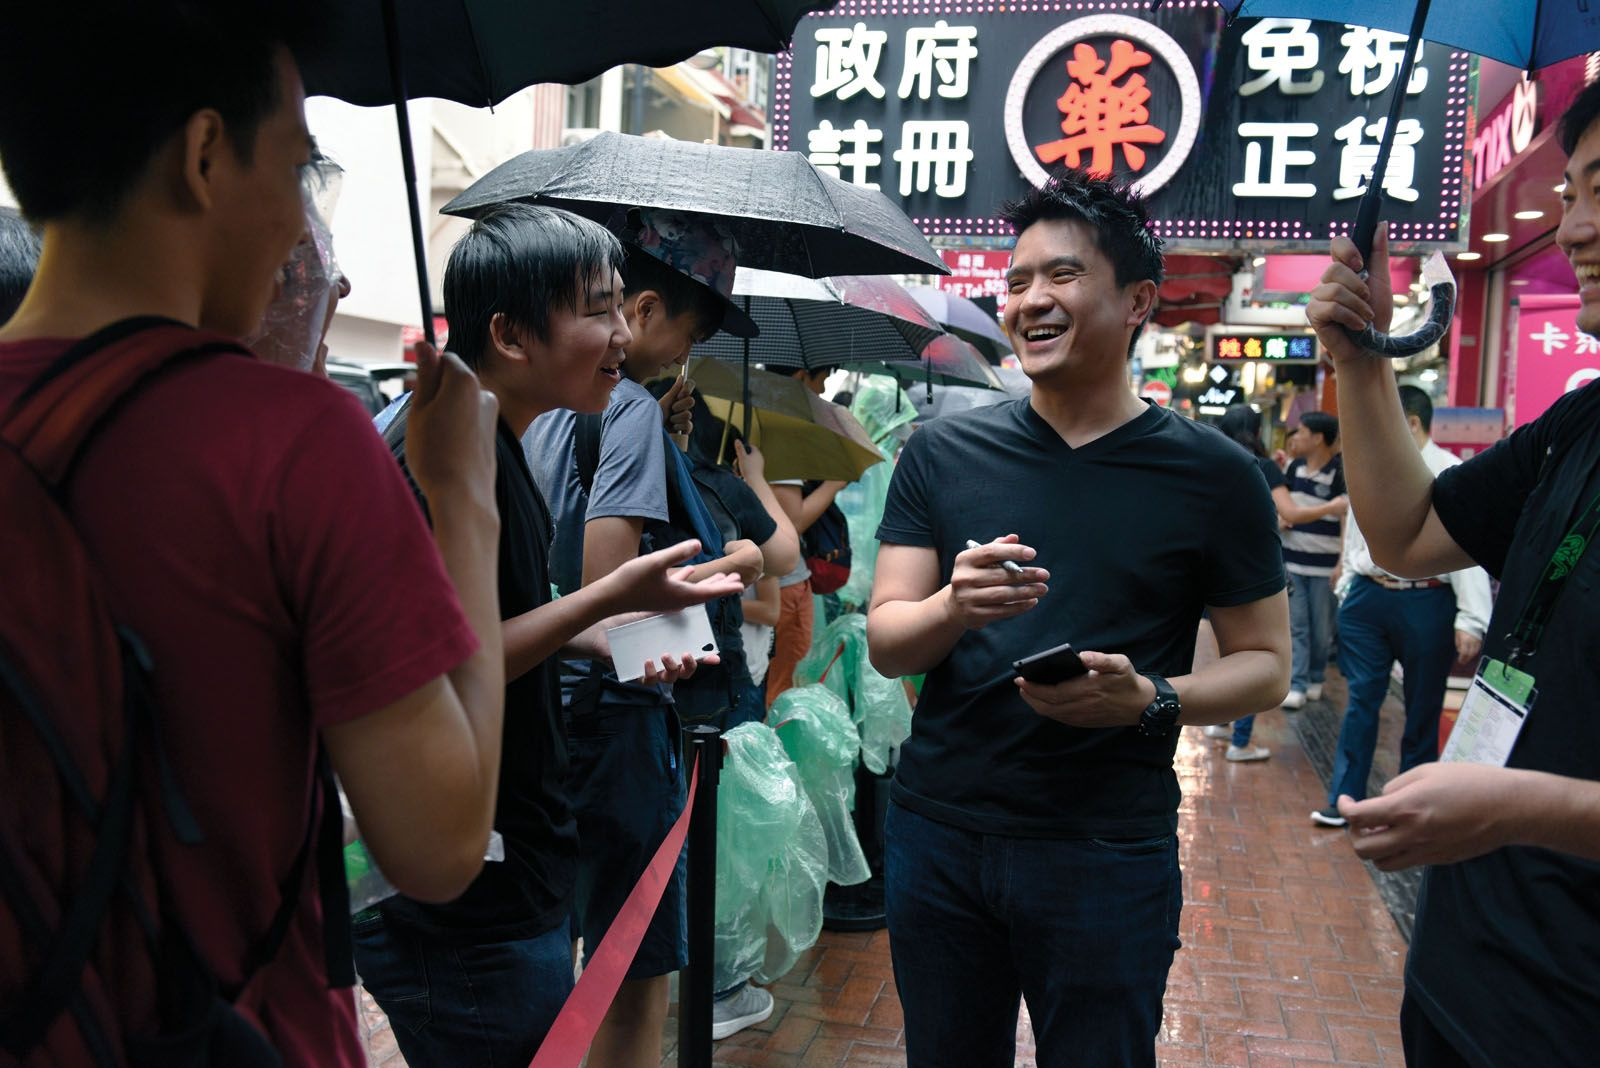 Tan is revered and respected in the gaming scene as he meets Razer fans in Hong Kong